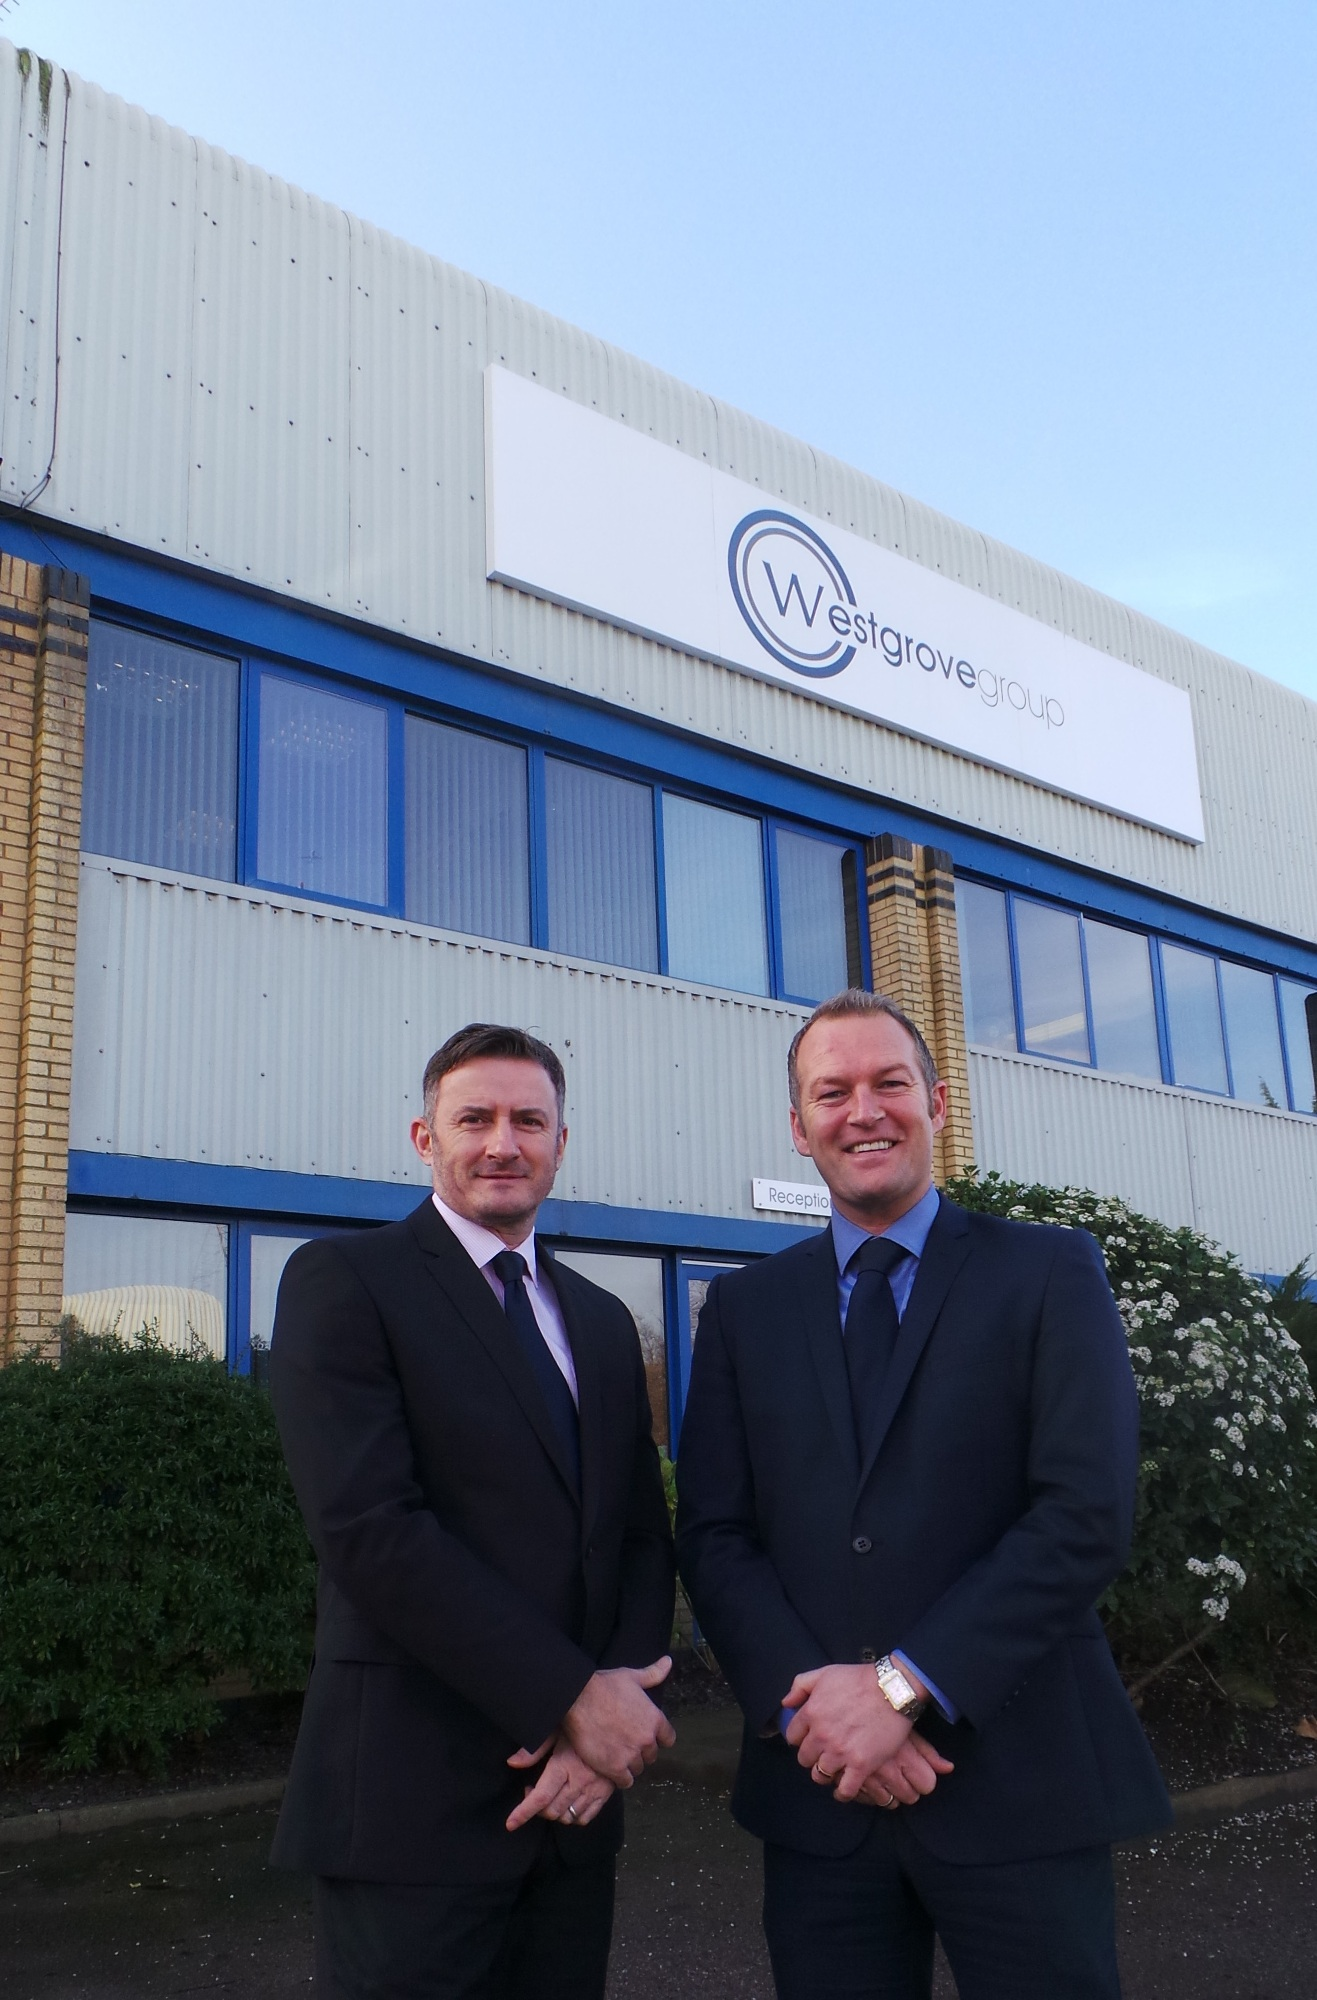 From left are Simon Whittle and Steve Fives, founders of the business